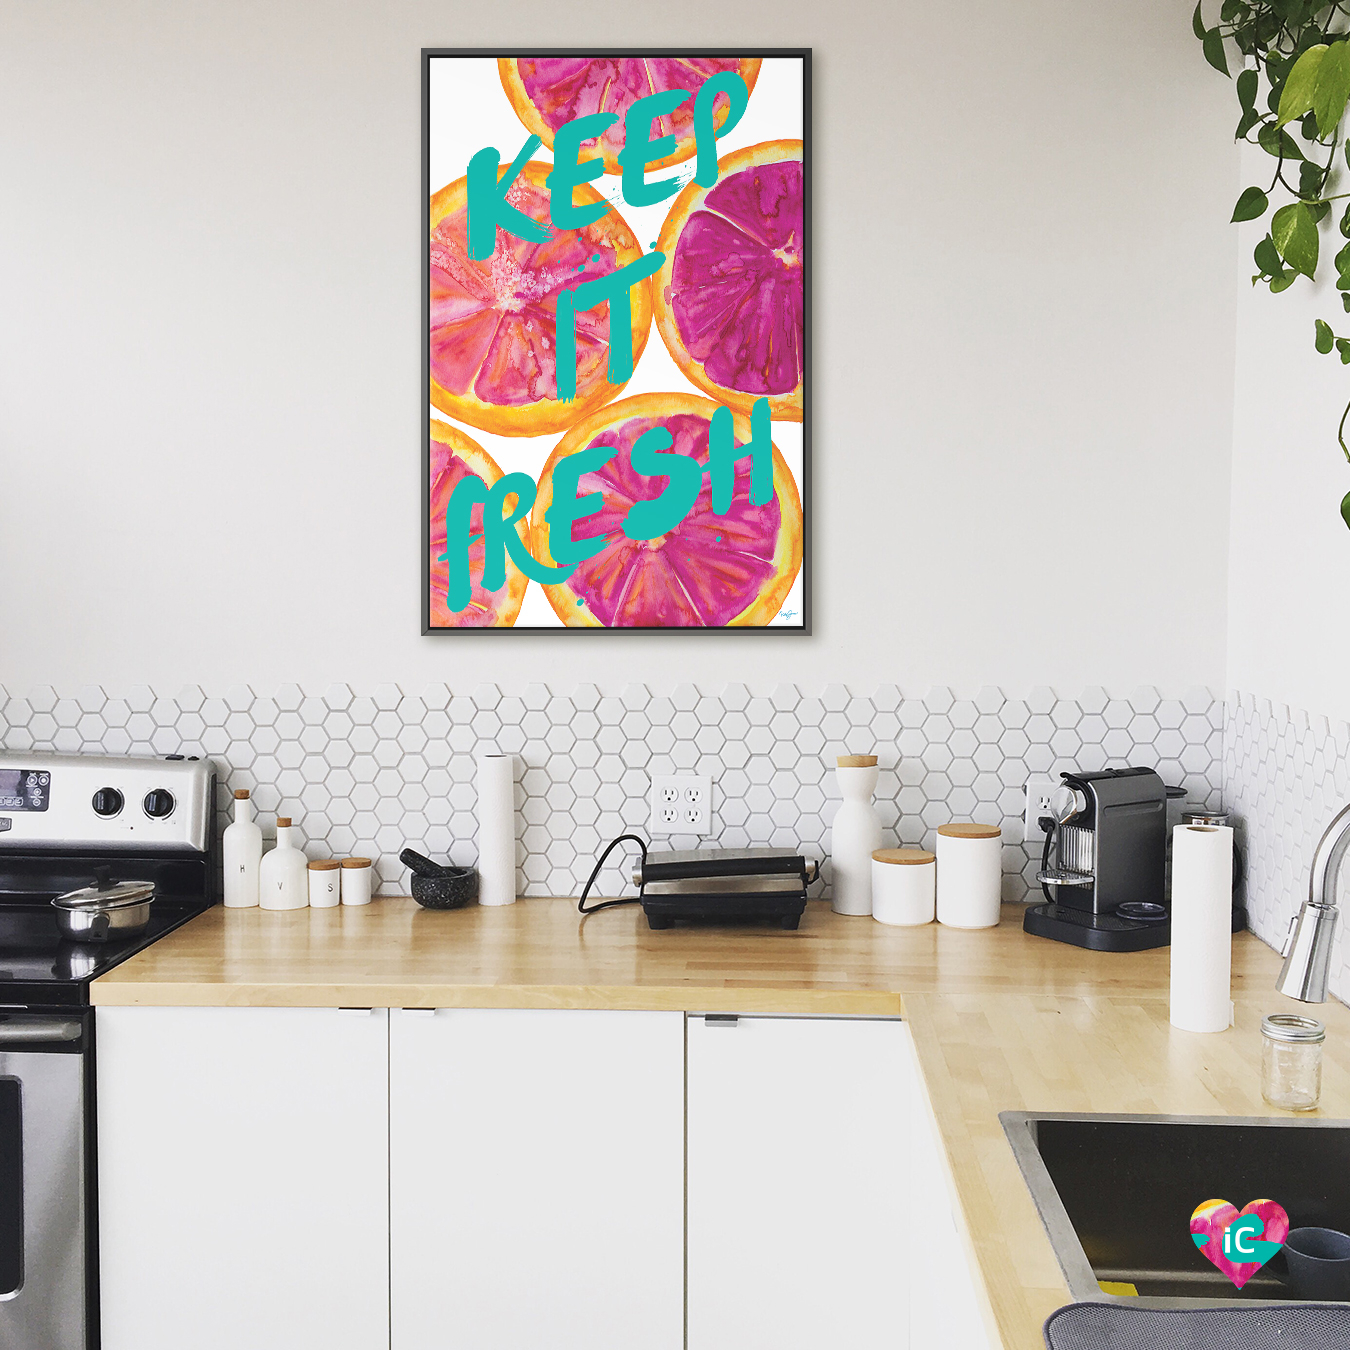 """""""Fresh & Sweet I"""" by Nola James shows the words 'keep it fresh' written in blue against pink-colored grapefruits."""